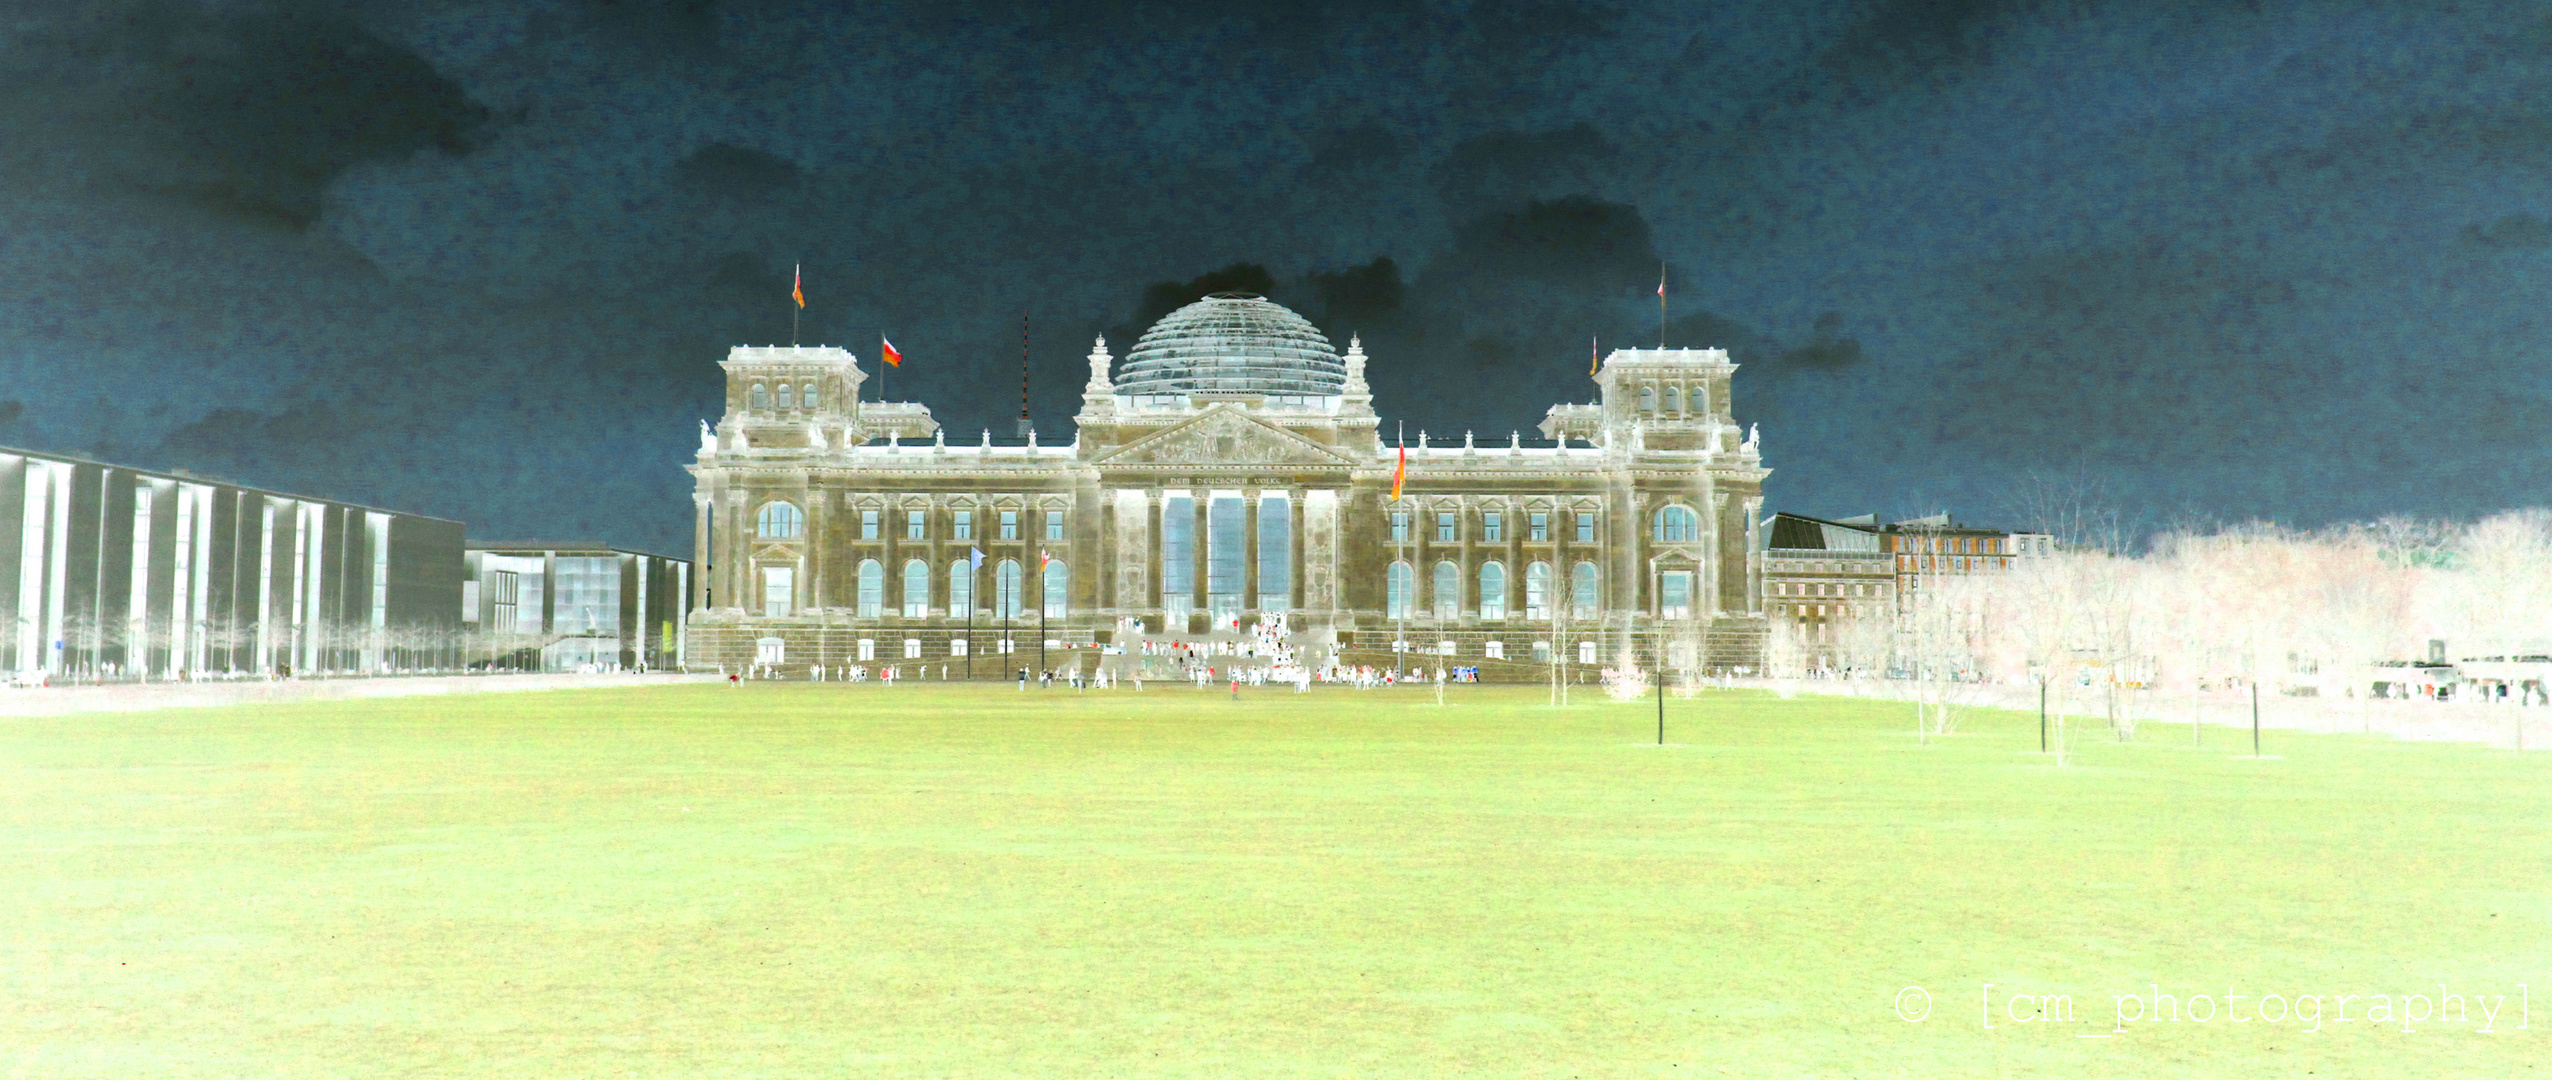 berlin gets photoshopped | reichstag